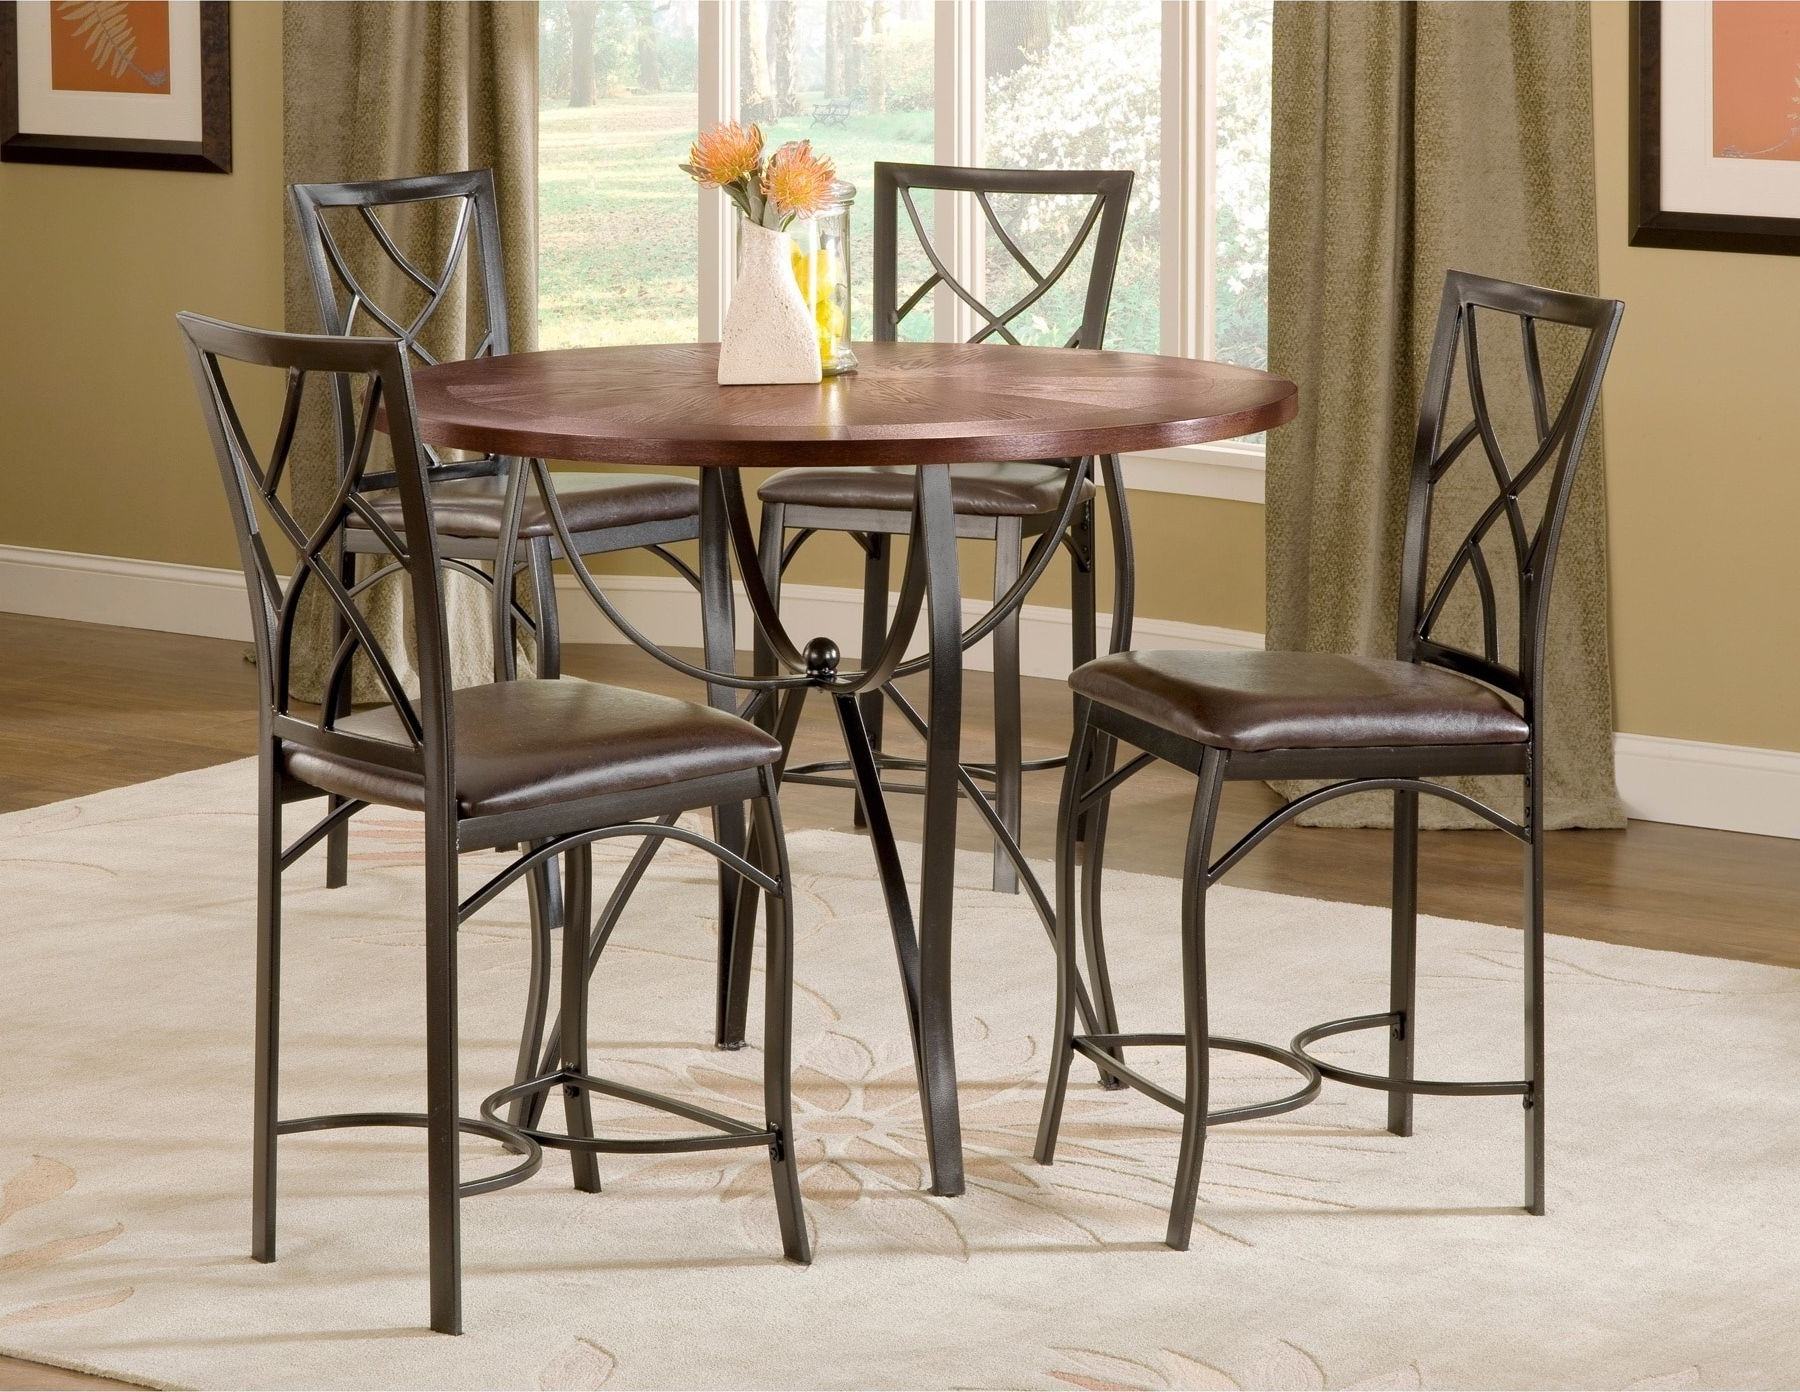 Jaxon 5 Piece Extension Counter Sets With Wood Stools In Most Recent Sanford Merlot 5 Piece Counter Height Table And 4 Chairs Black Metal (View 13 of 25)